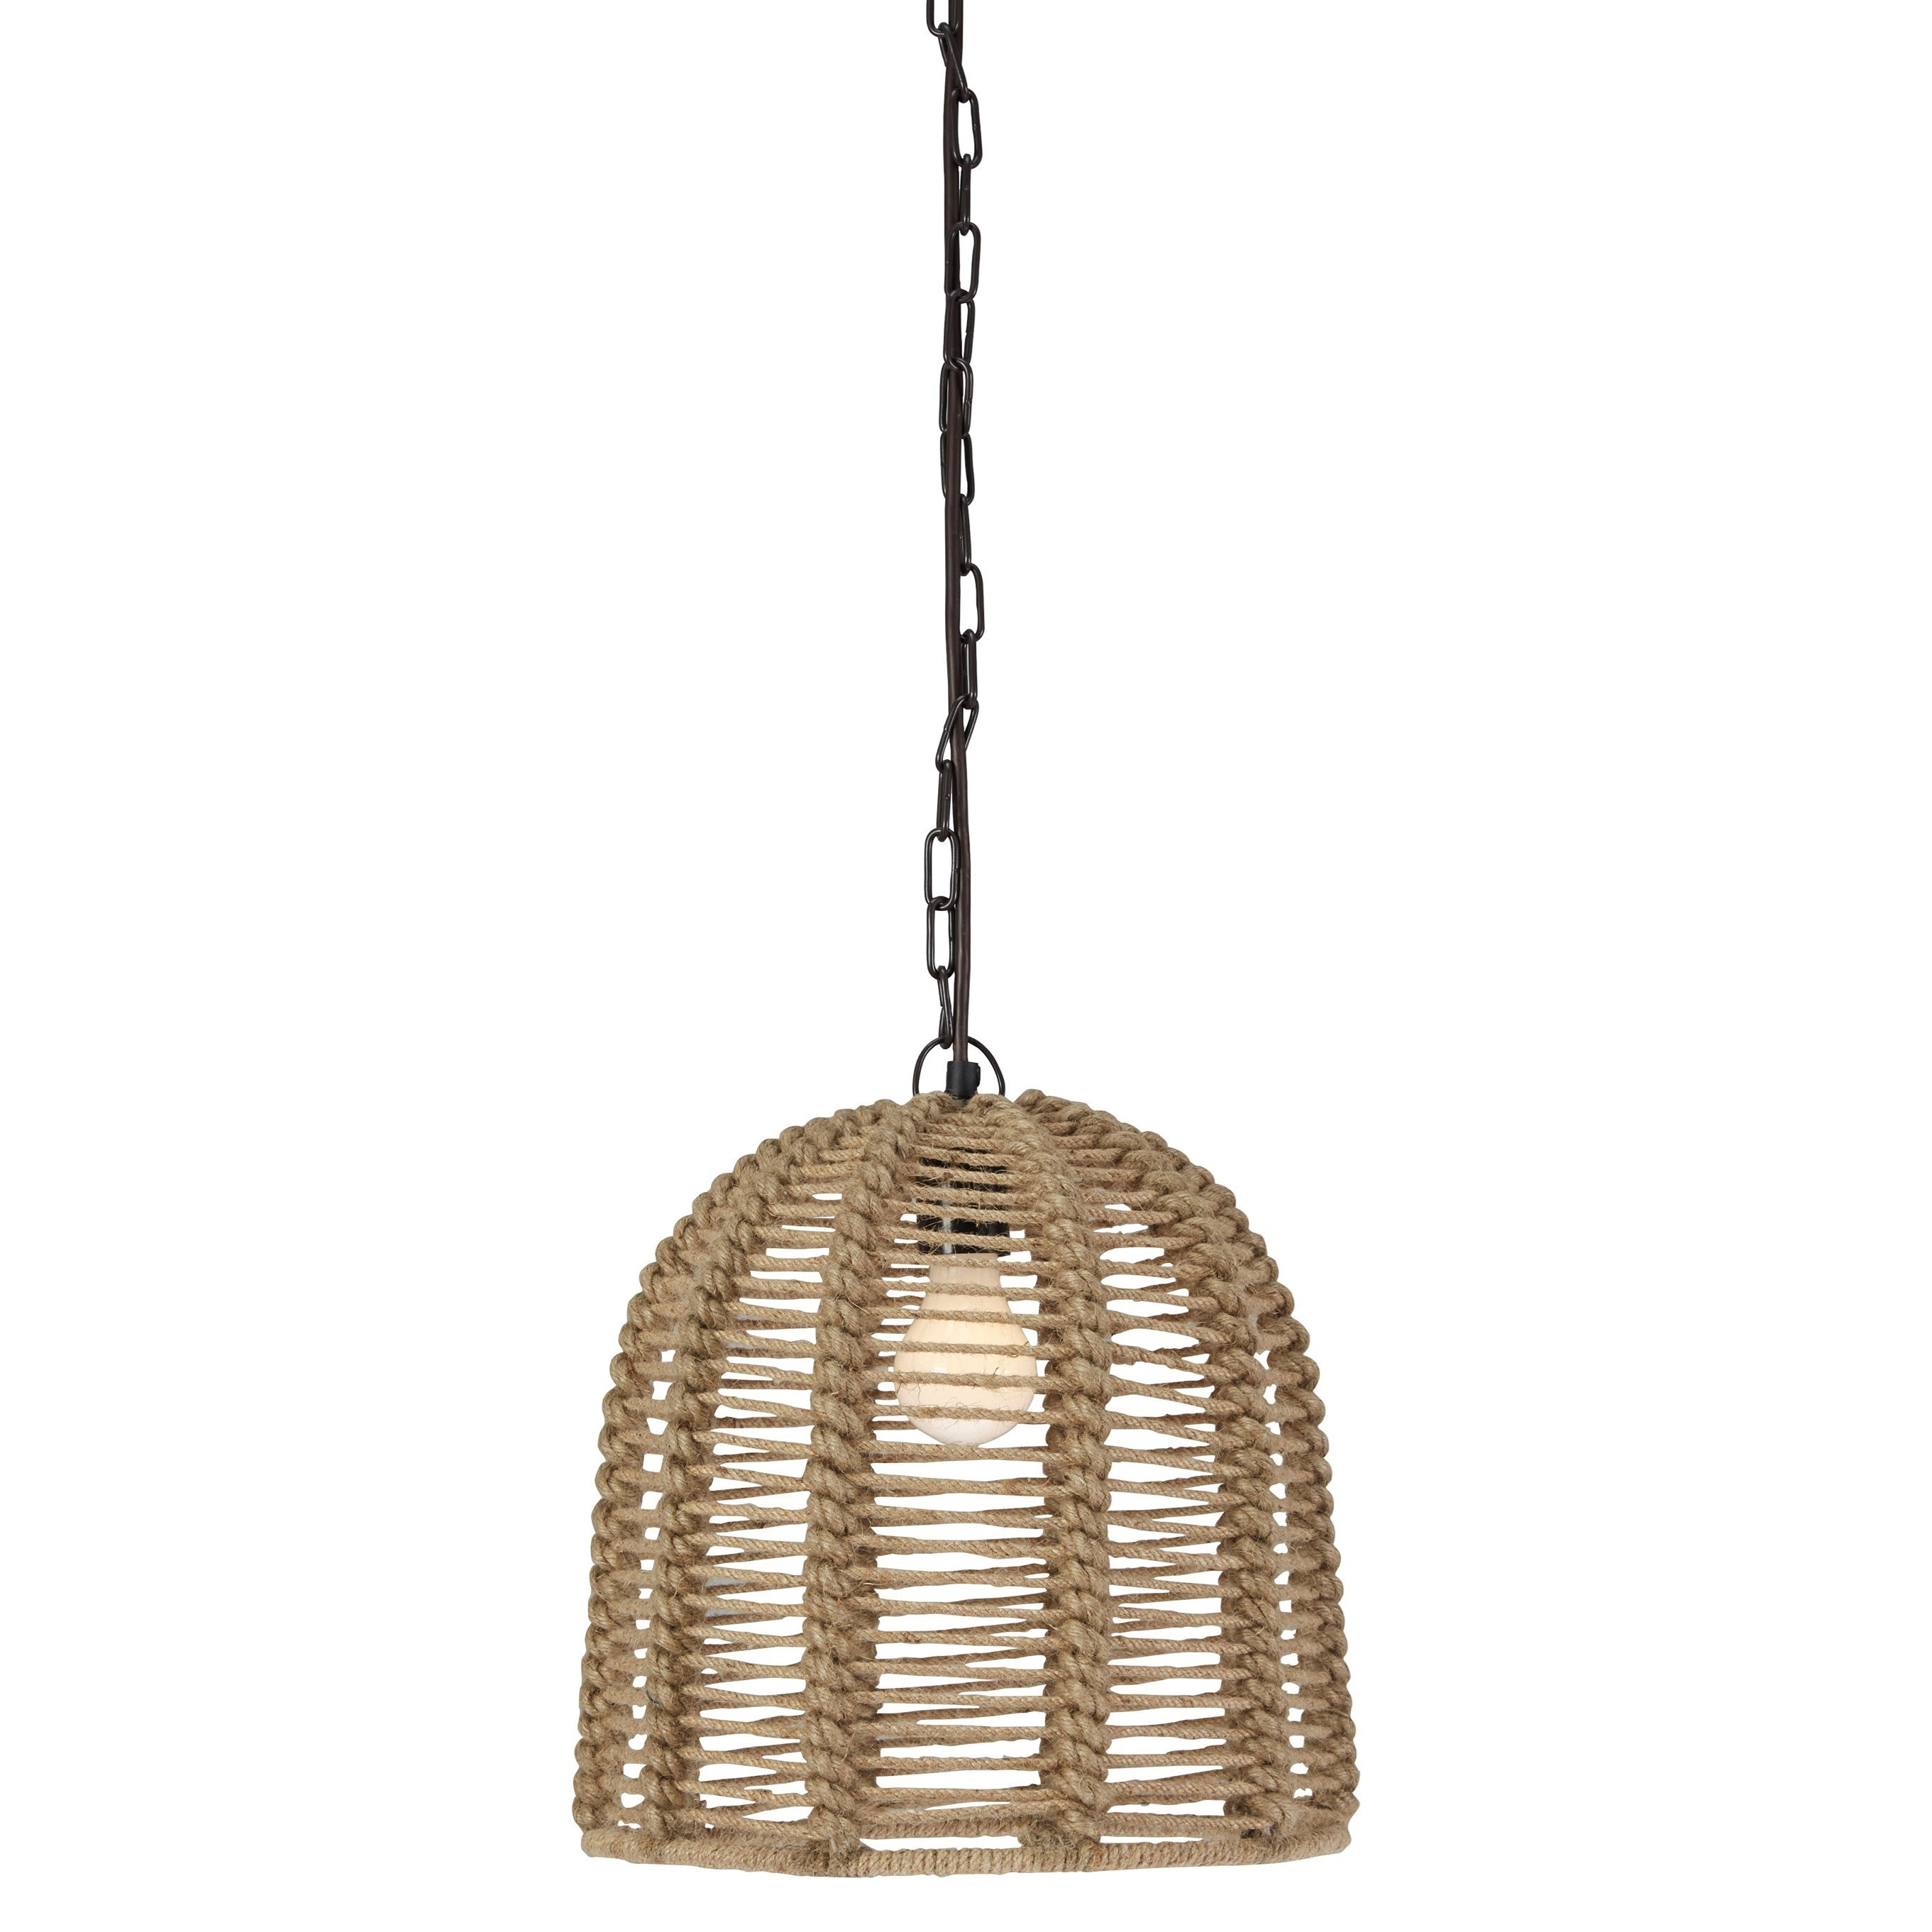 Signature Design by Ashley Pendant Lights Jamarion Natural Rope Pedant Light - Item Number: L000388